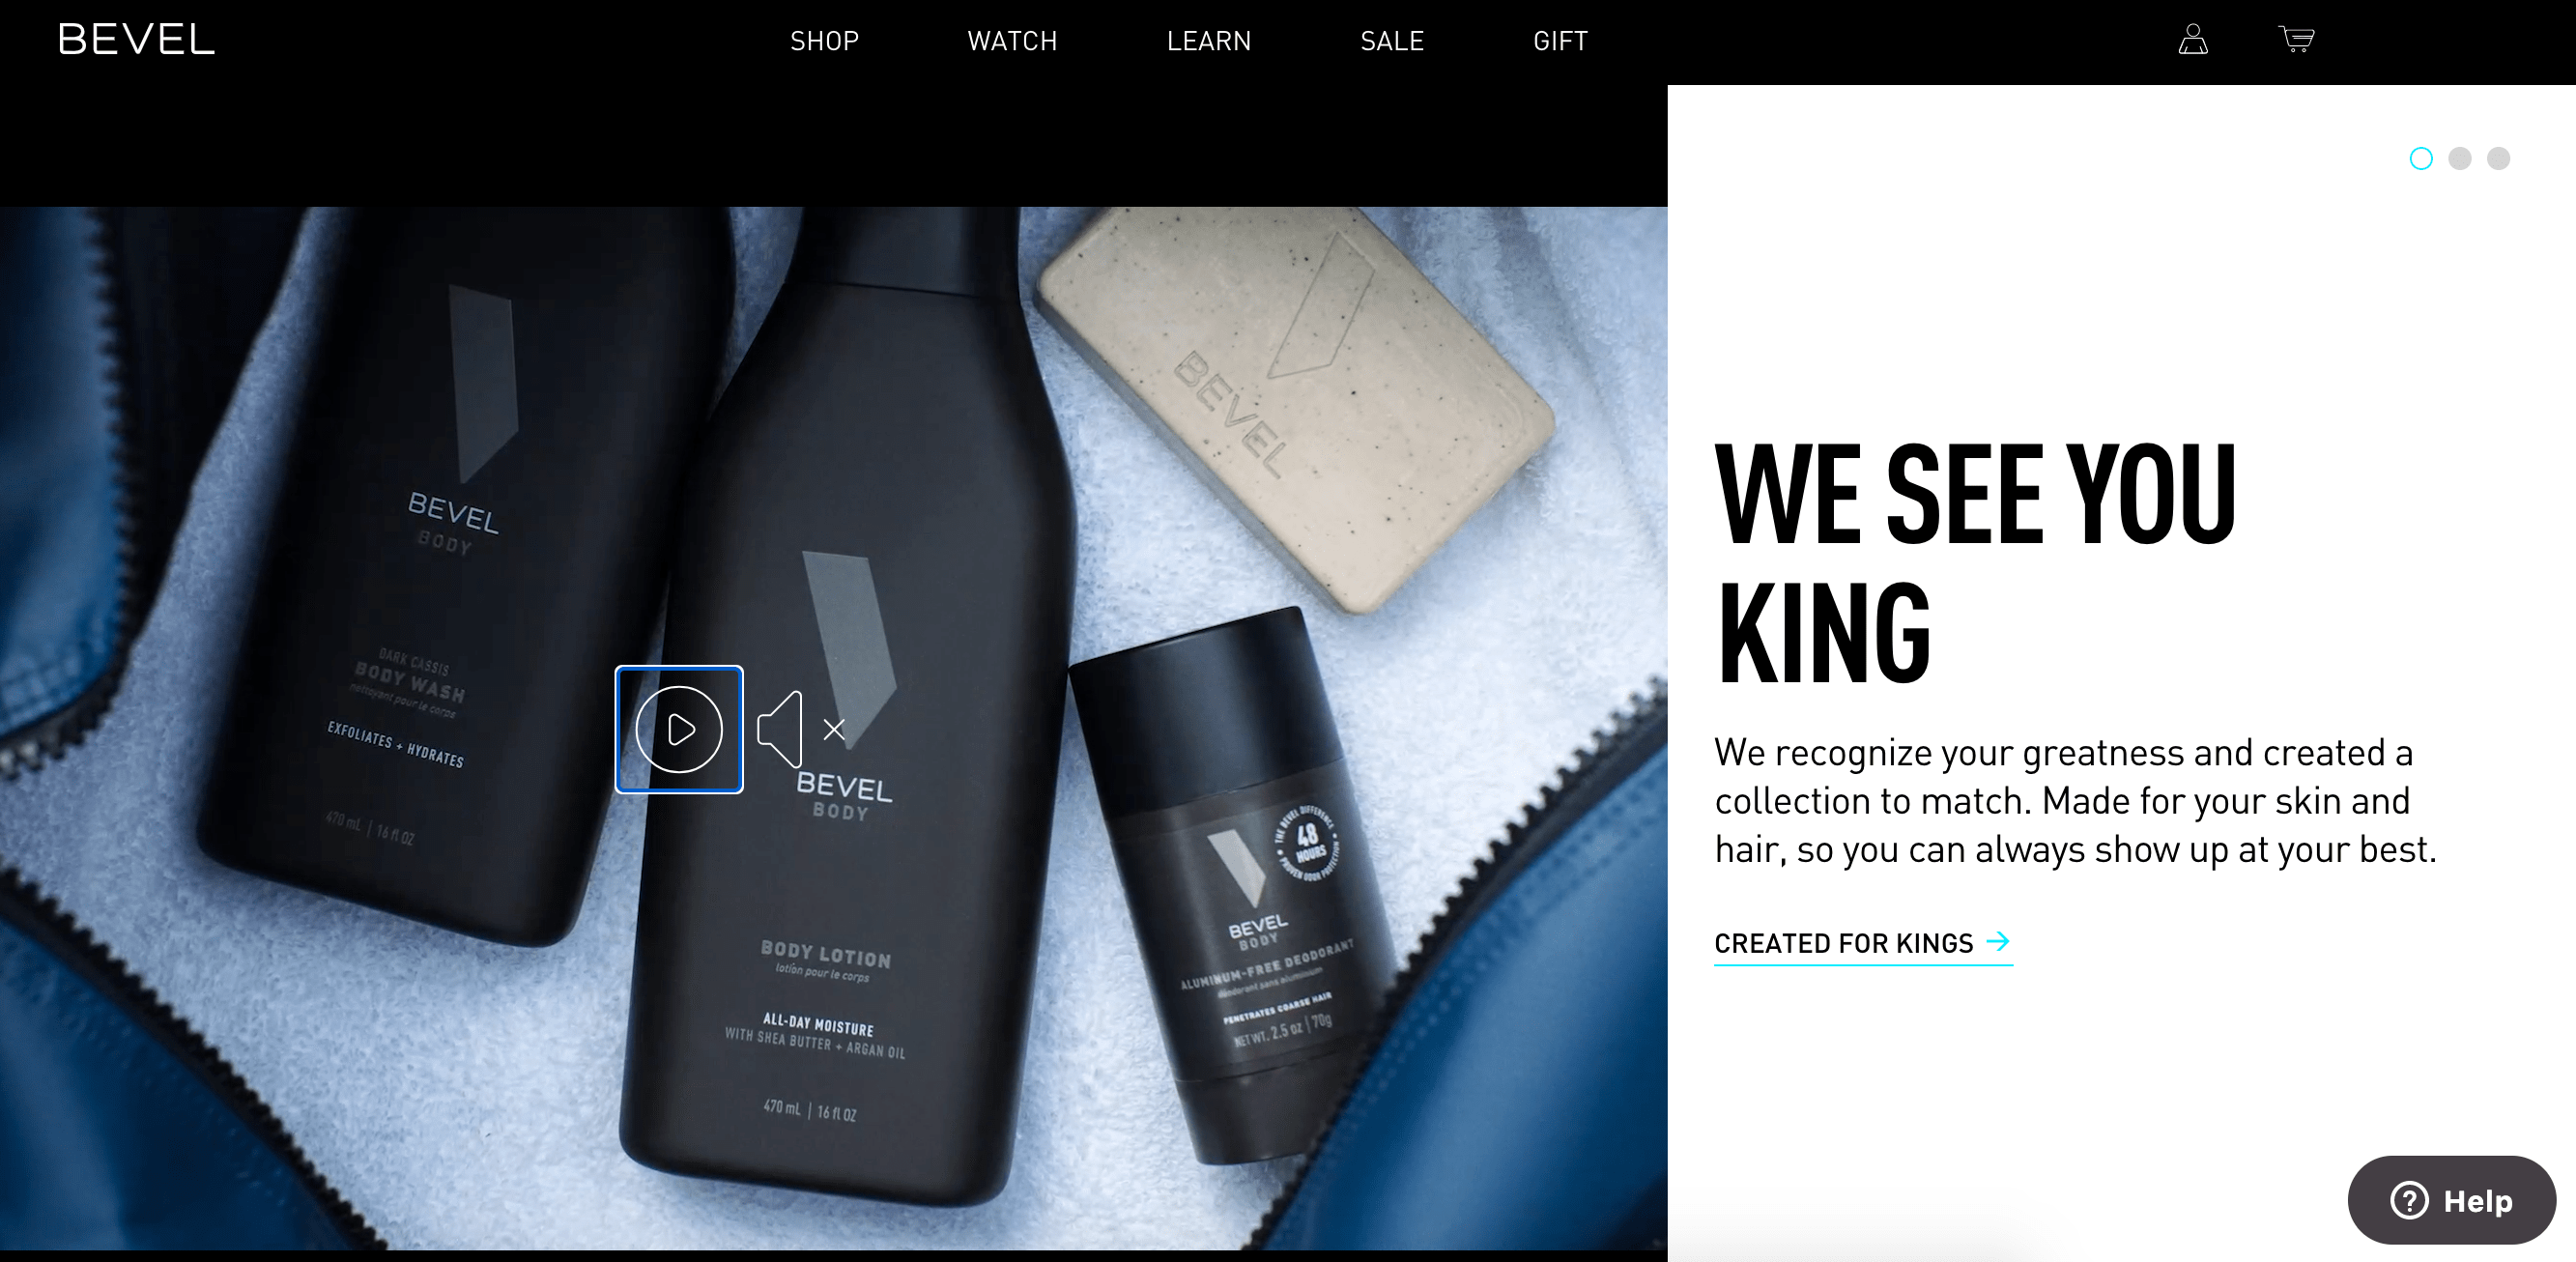 bevel example of powerful black-owned business marketing